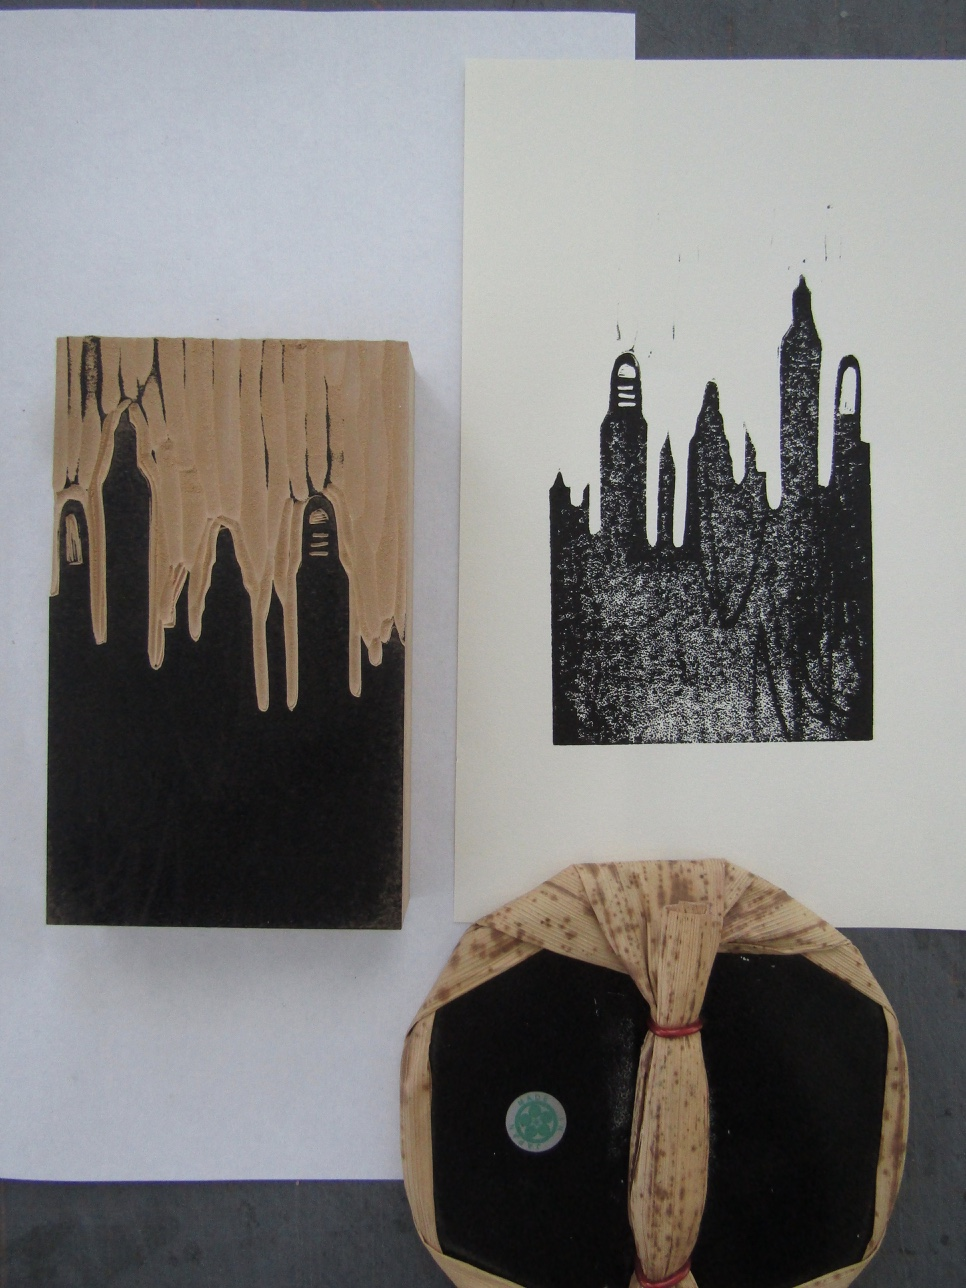 This is a proof of a third block of a skyline. I used this to represent the concept of 'ruins'.